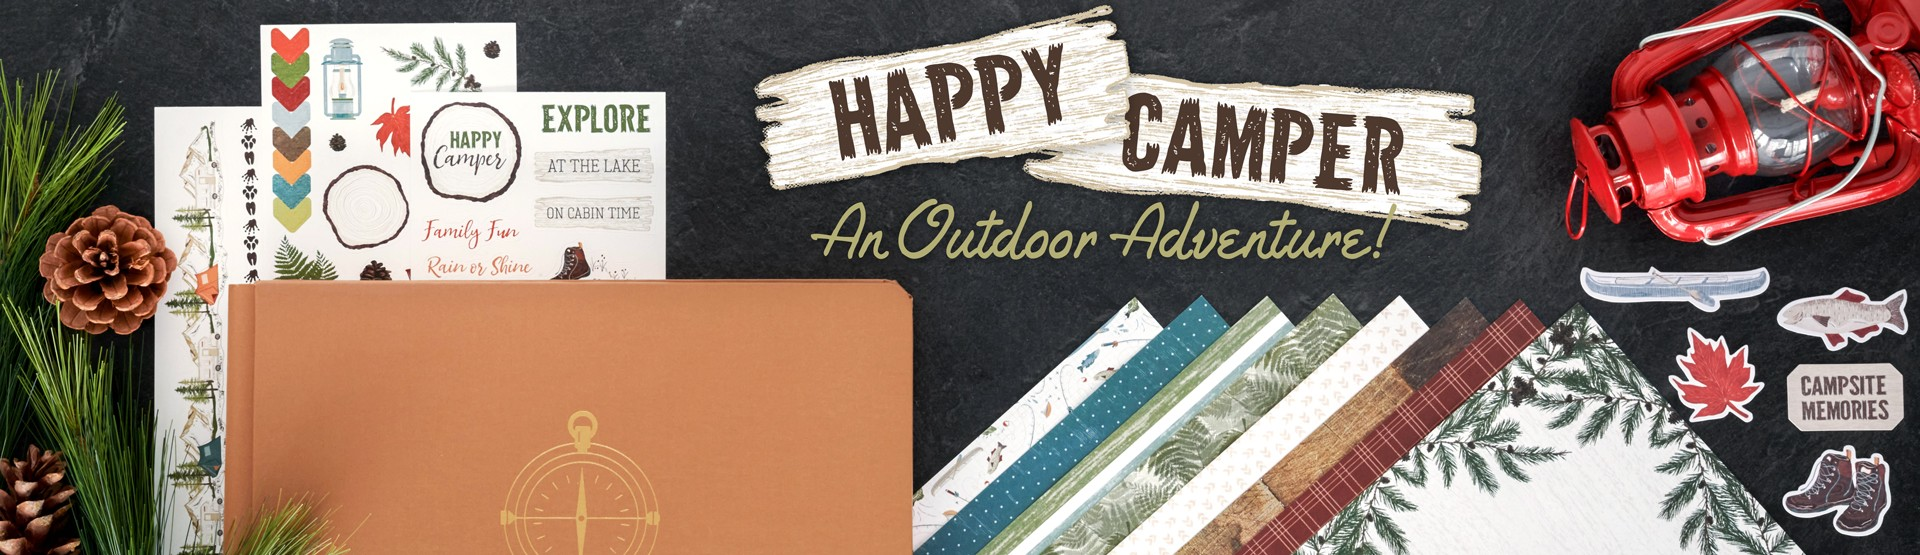 Camping & Outdoors: Happy Camper